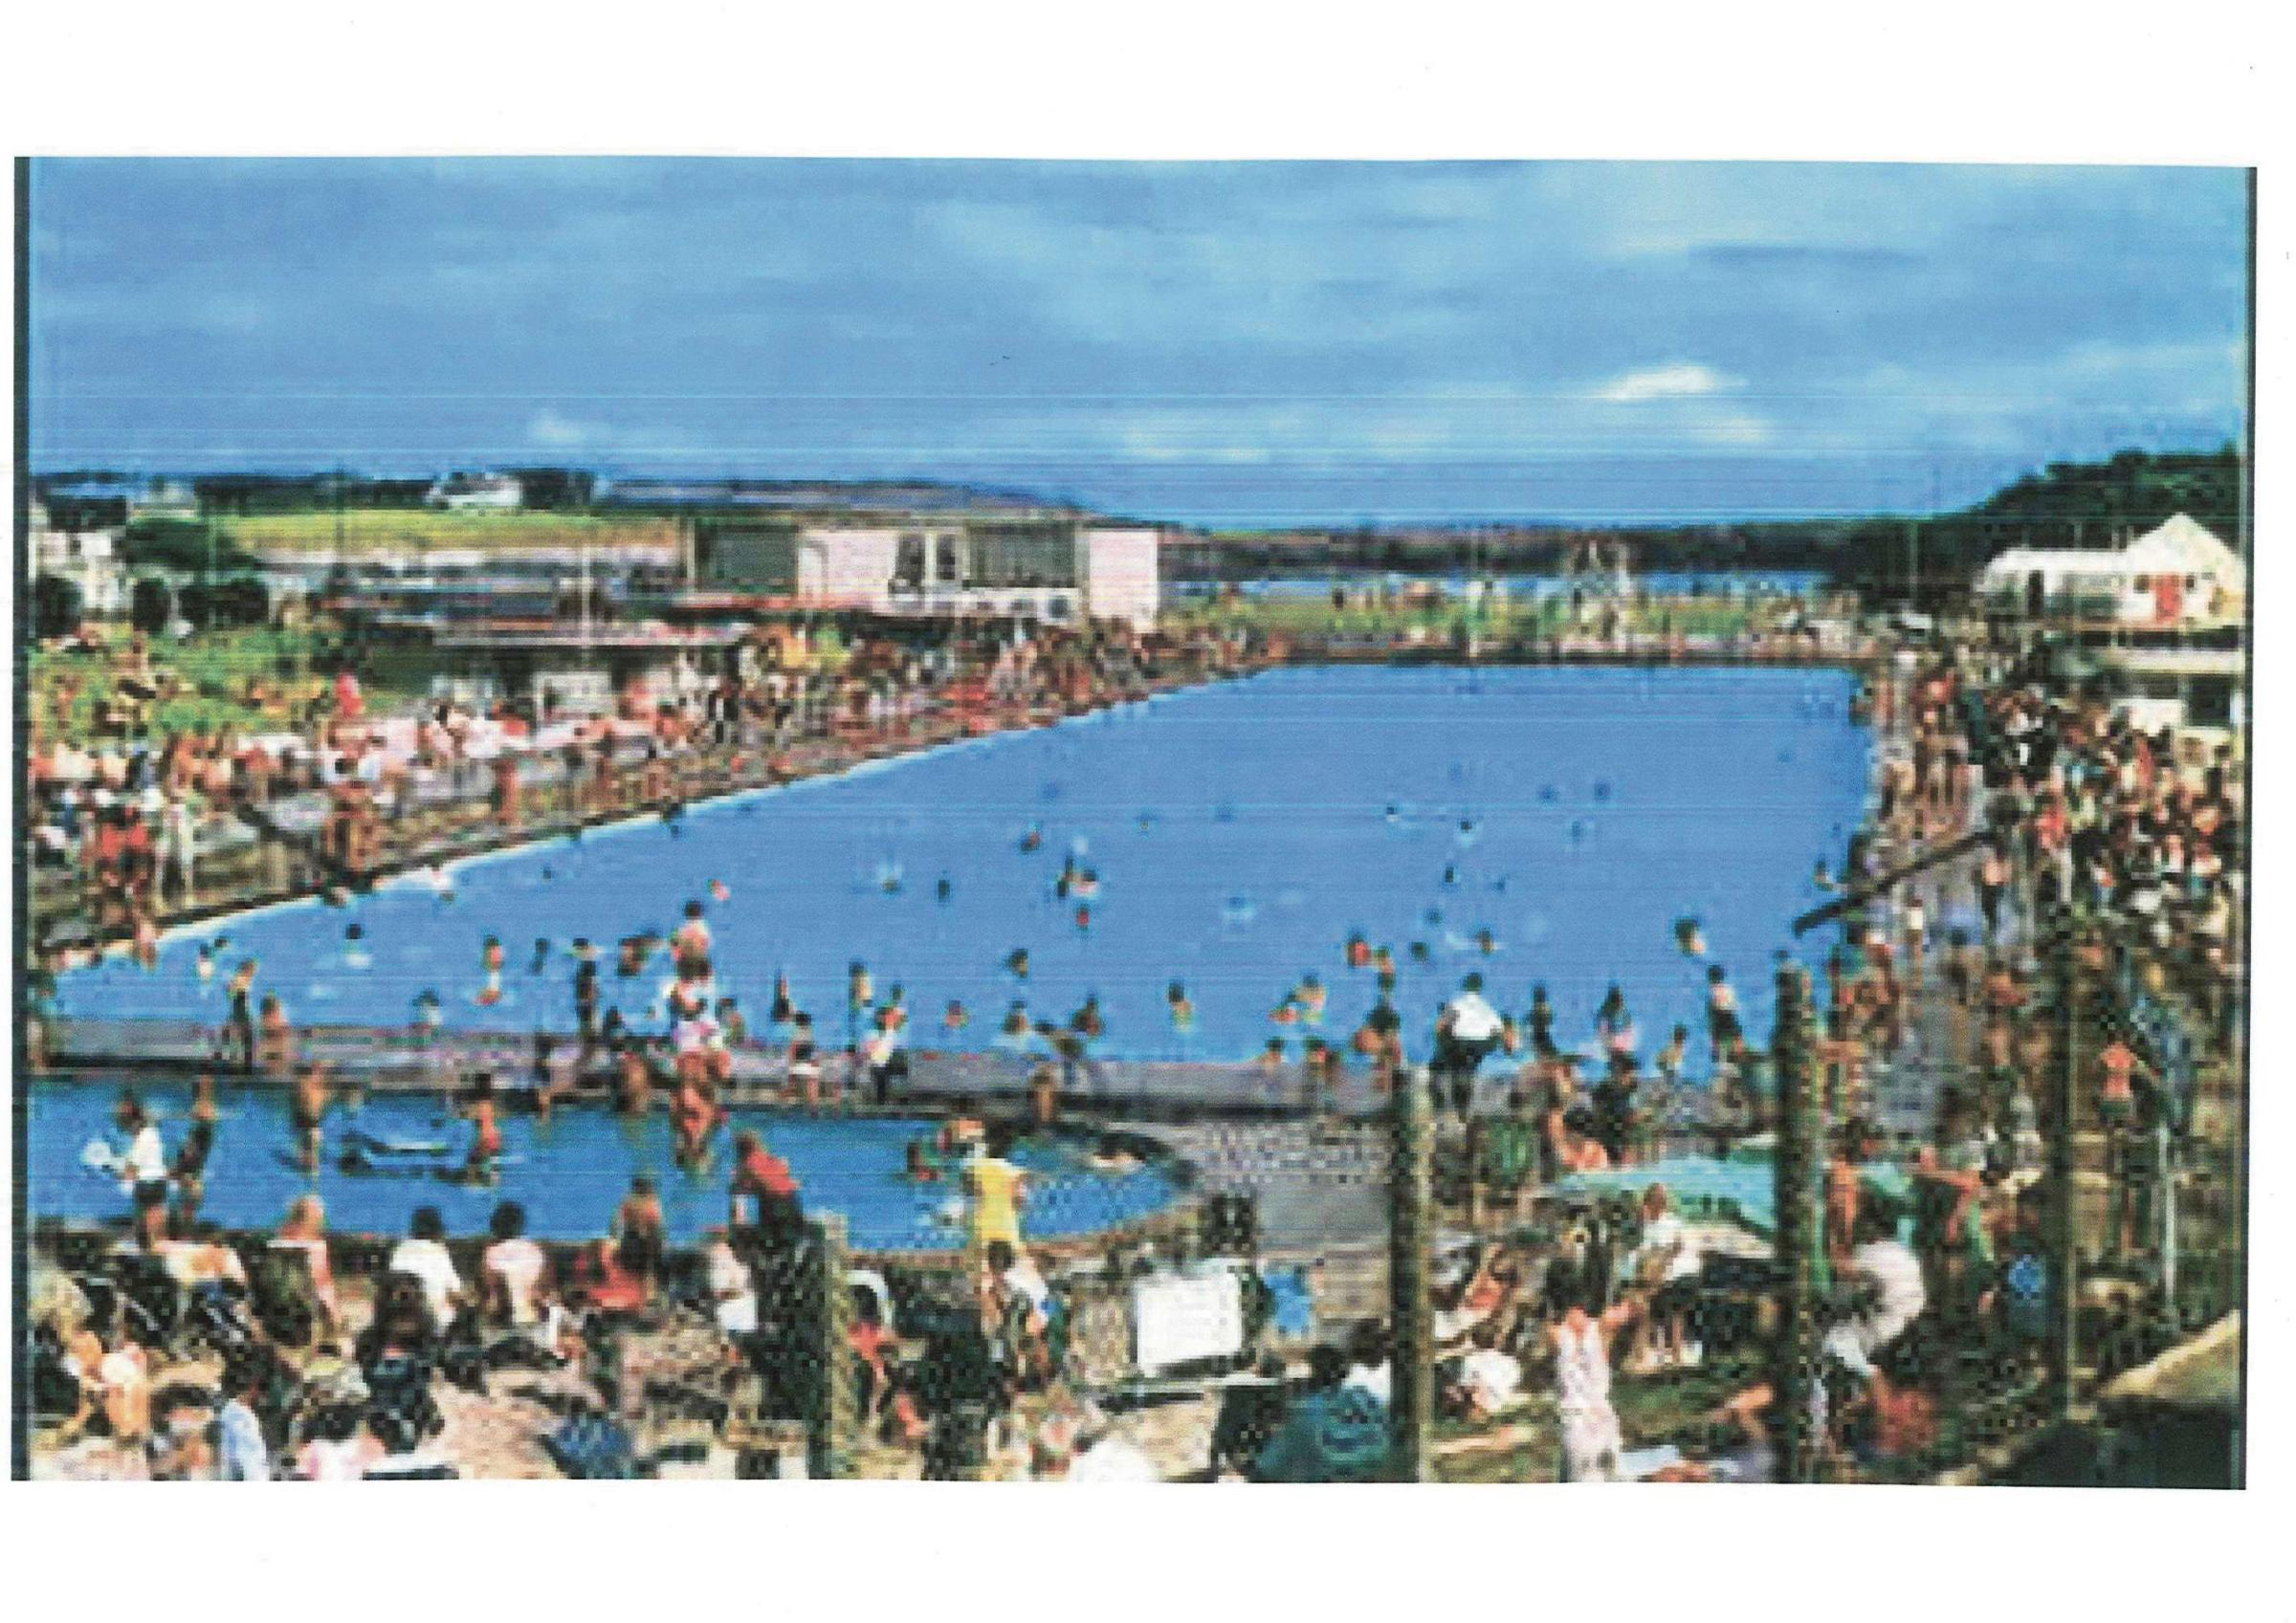 Should Barry's iconic lido be rebuilt?